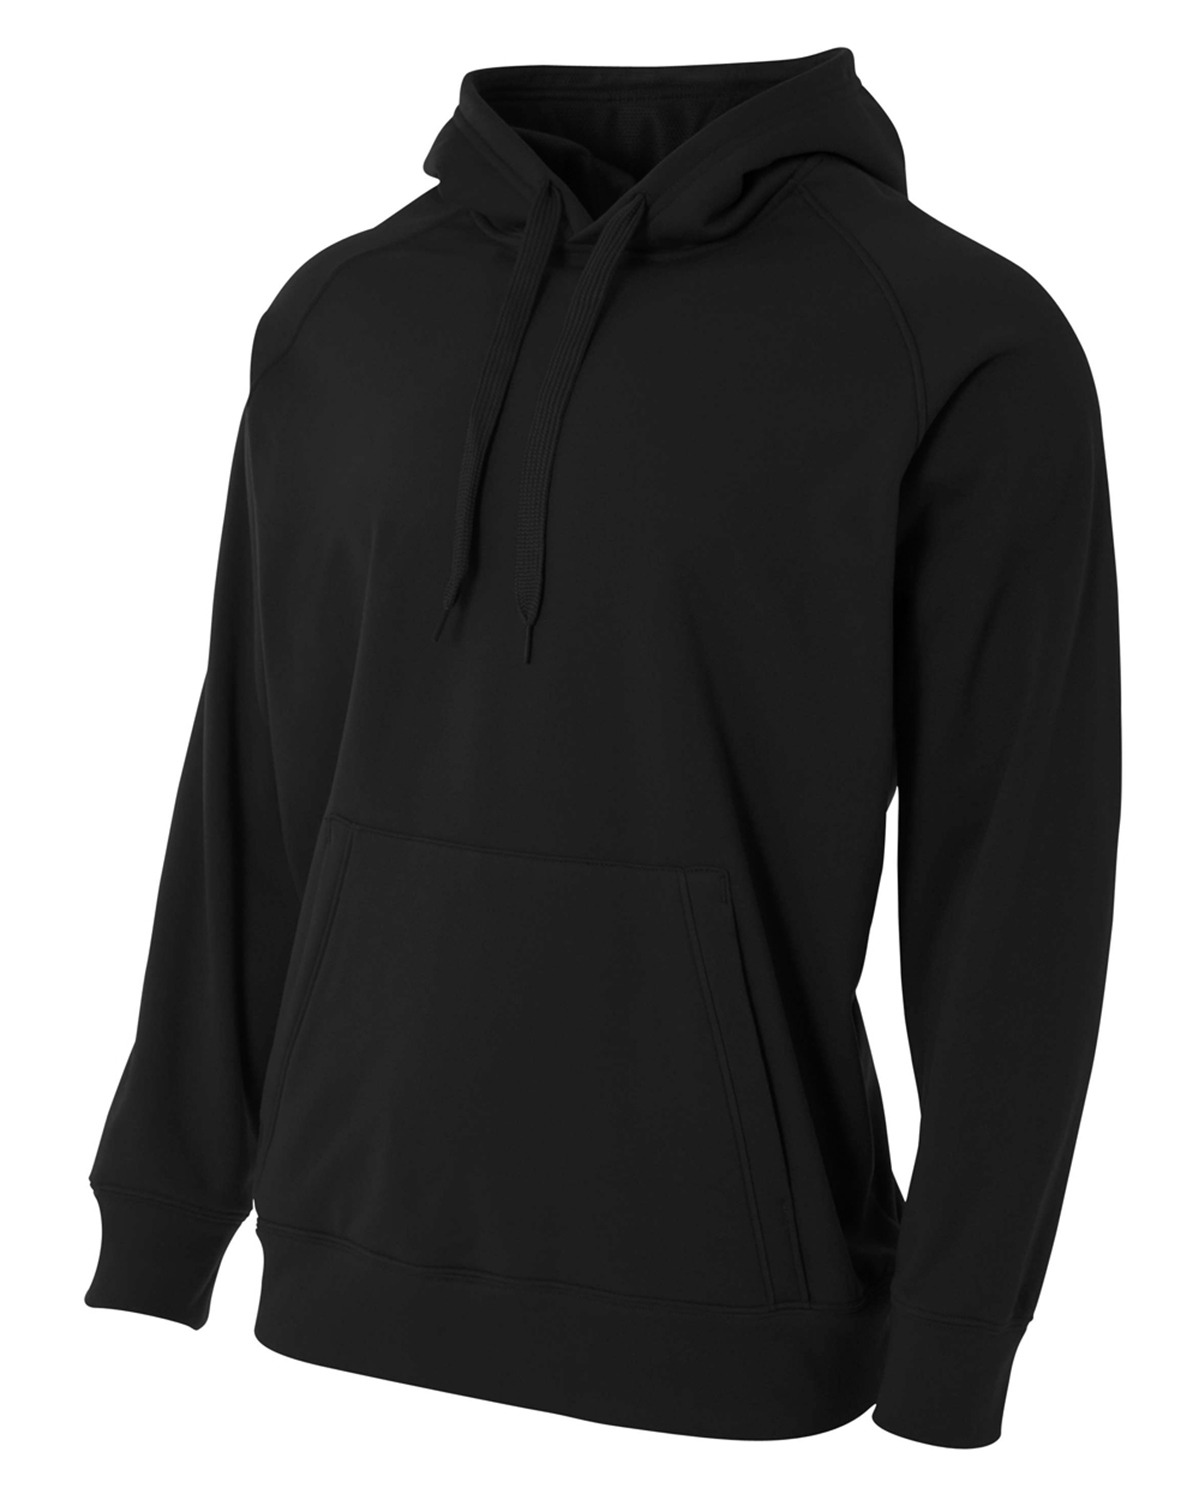 A4 Drop Ship N4237 – Men's Solid Tech Fleece Hoodie 1